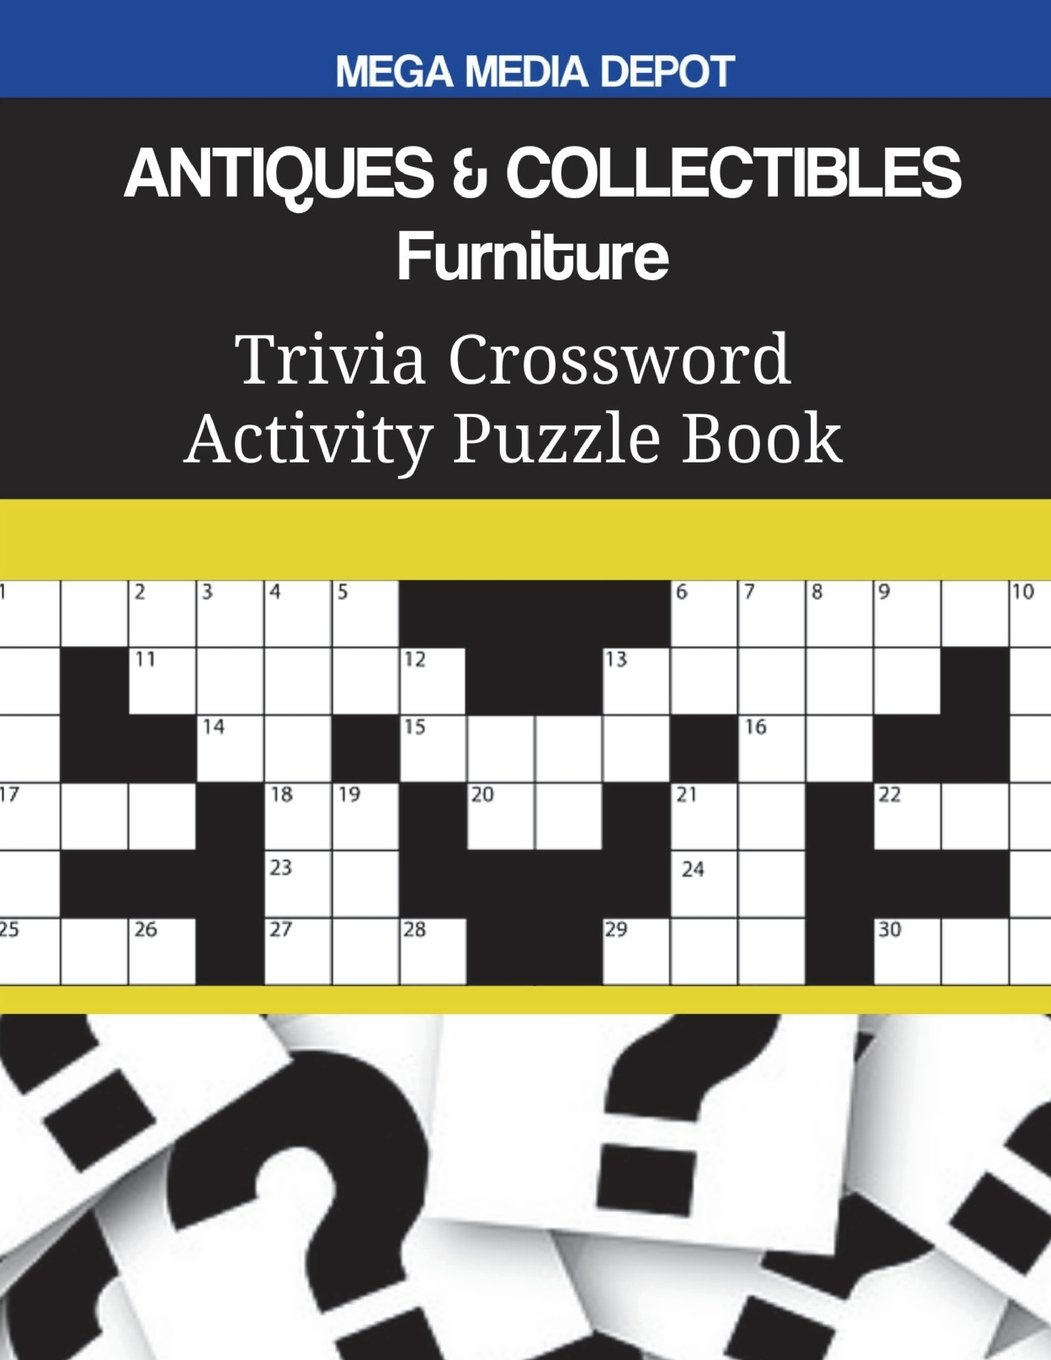 Antiques Collectibles Furniture Trivia Crossword Activity Puzzle